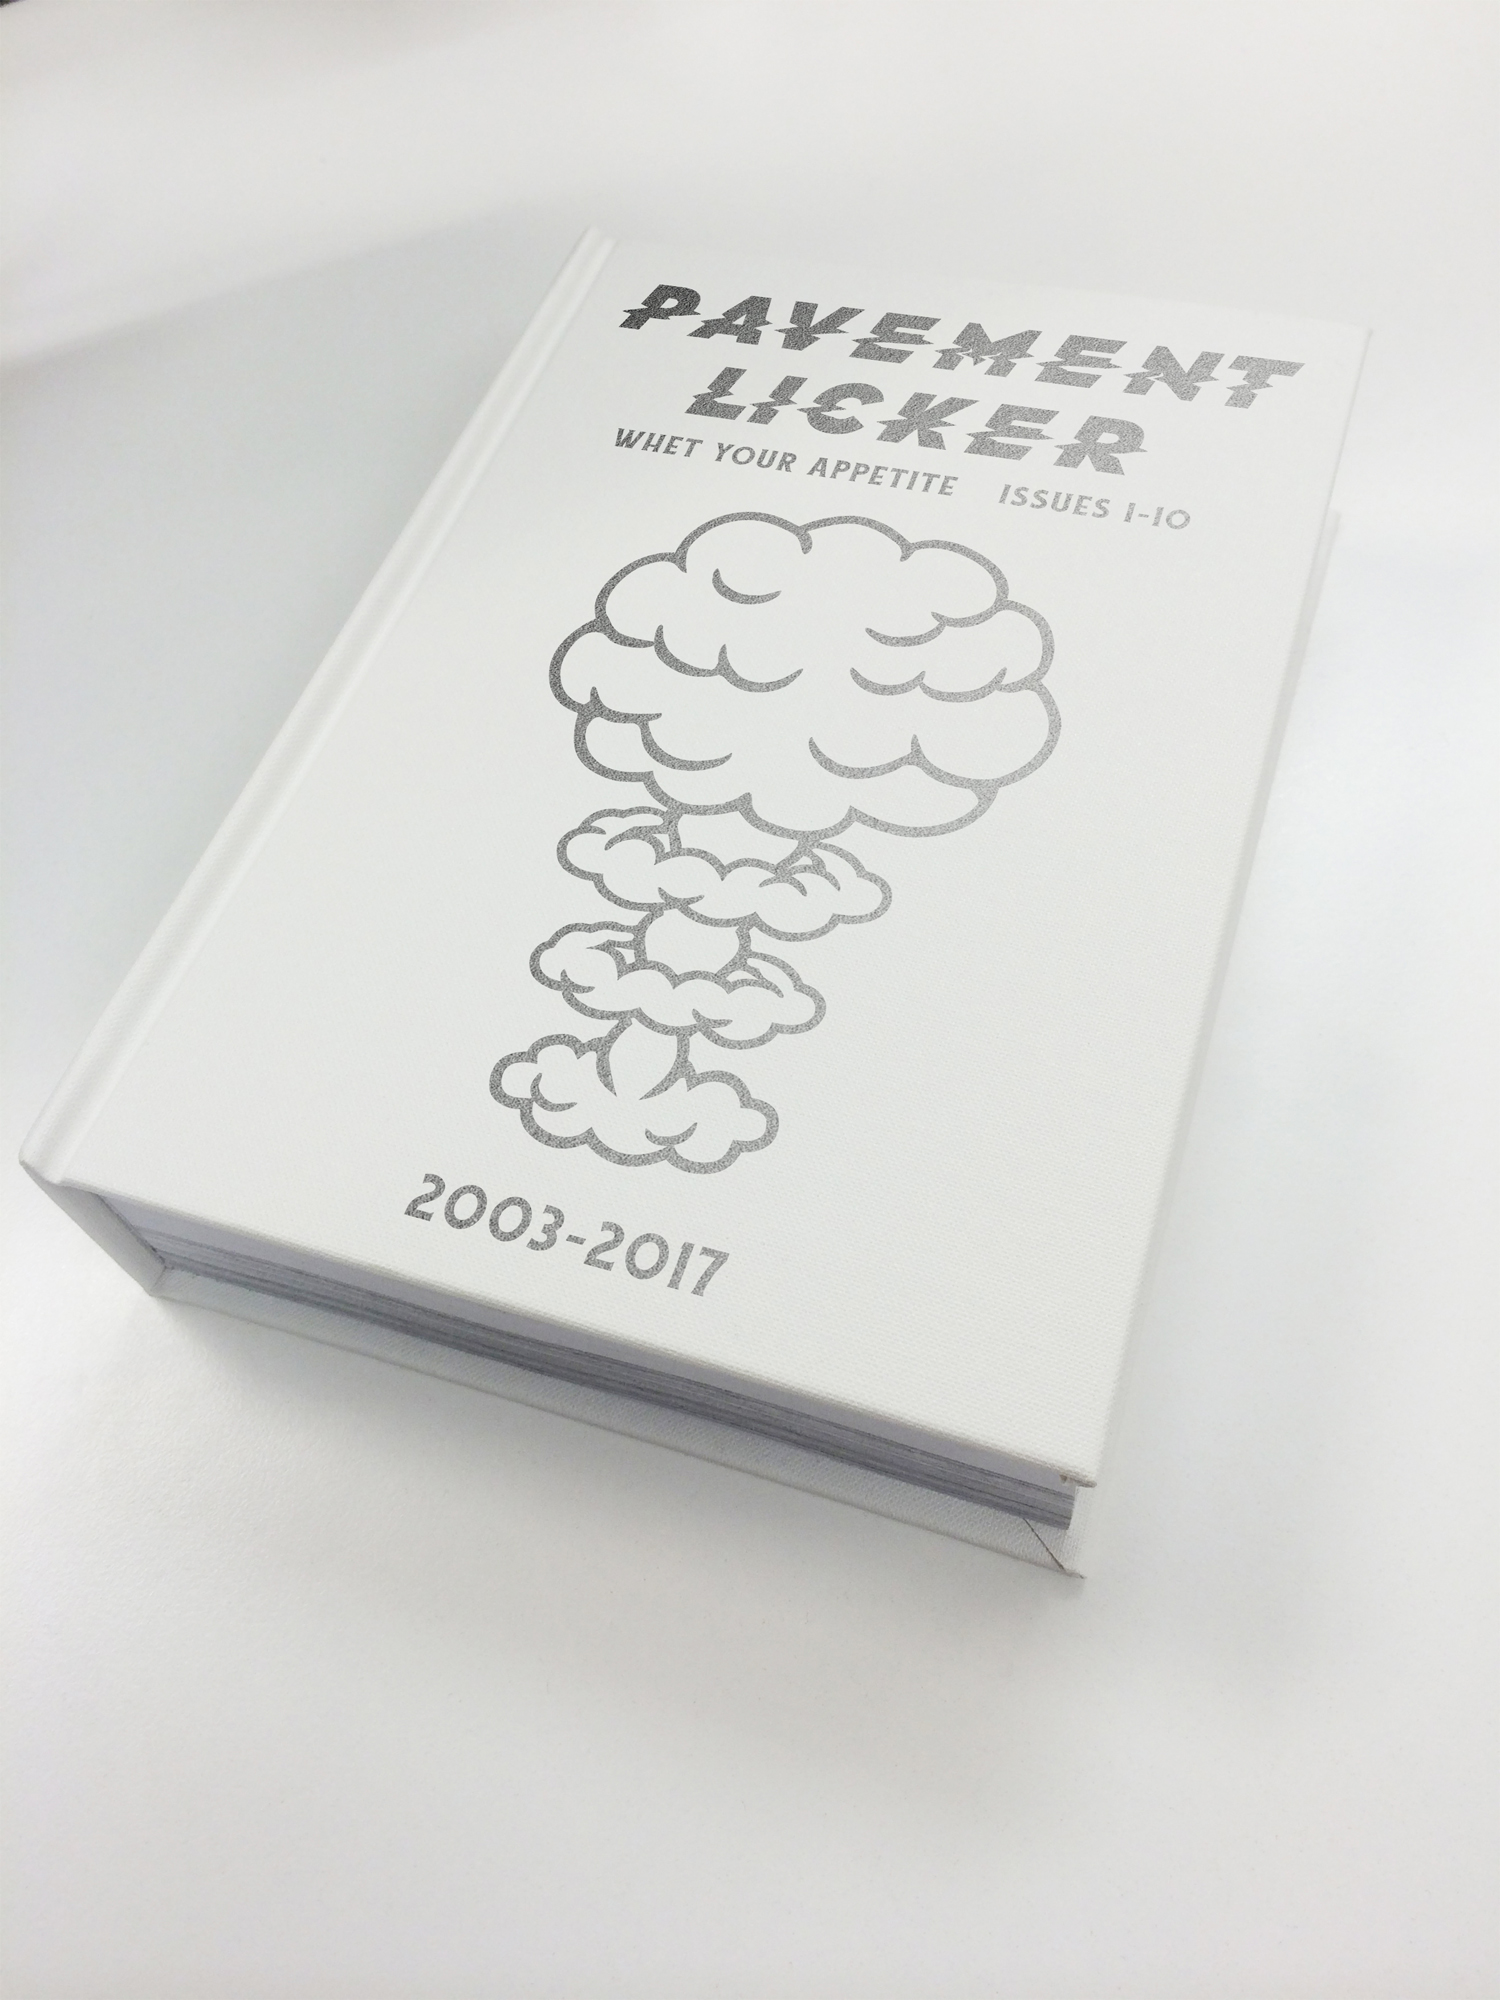 Pavement-Licker-Book-Silver-2017.jpg